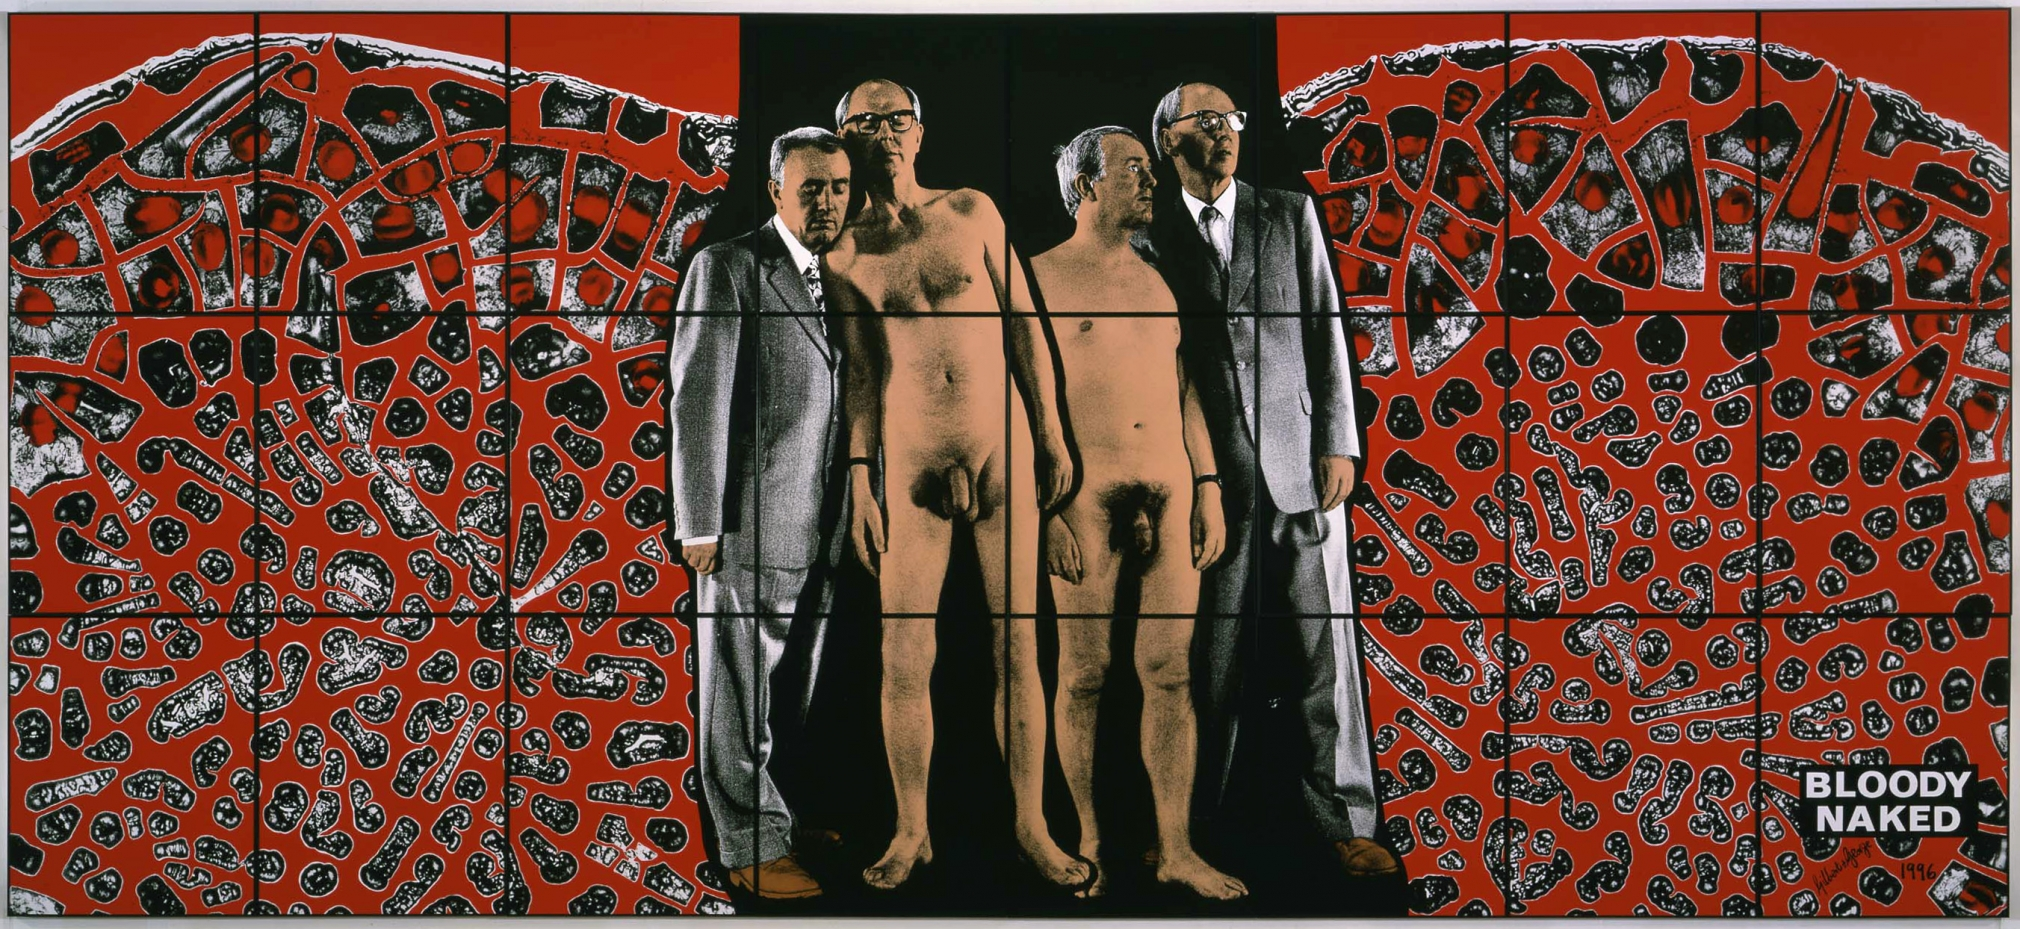 GILBERT & GEORGE, Bloody Naked, 1996